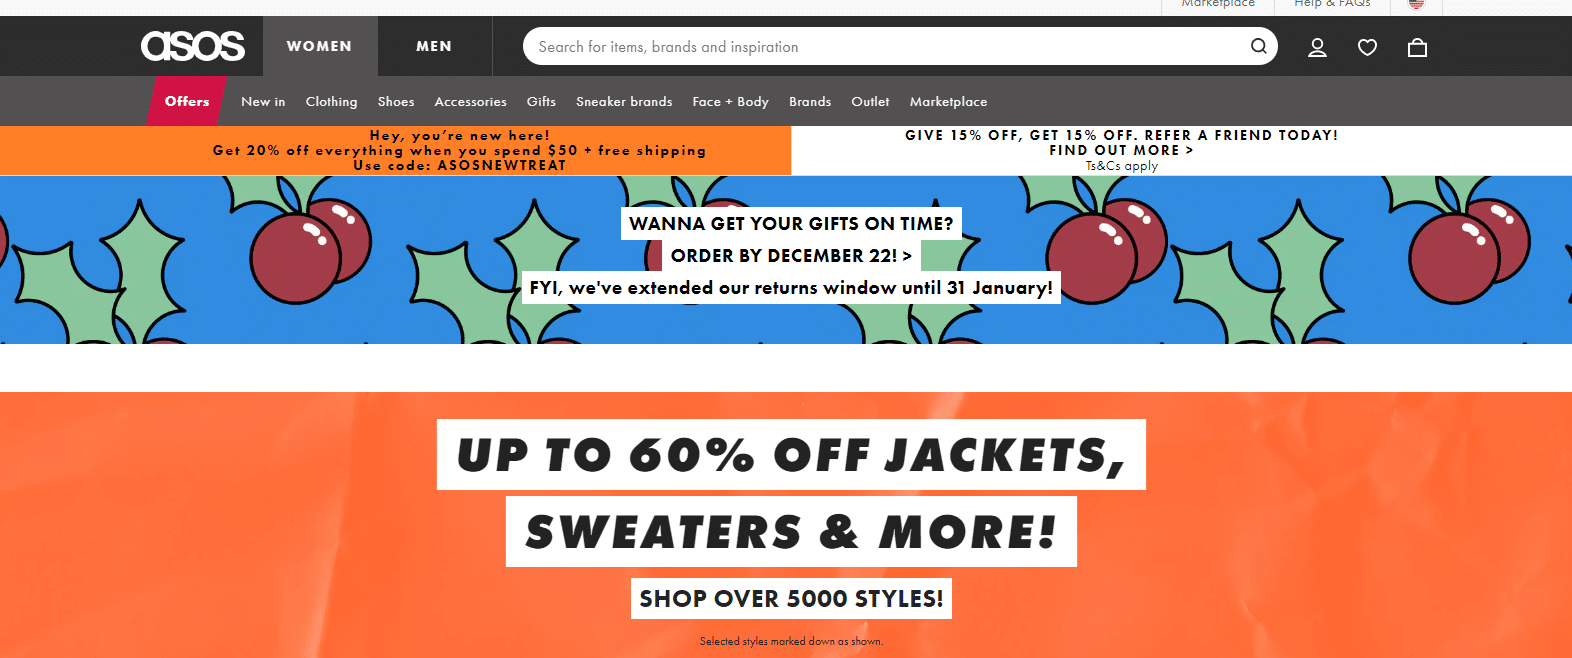 asos 20% off coupon code for first order